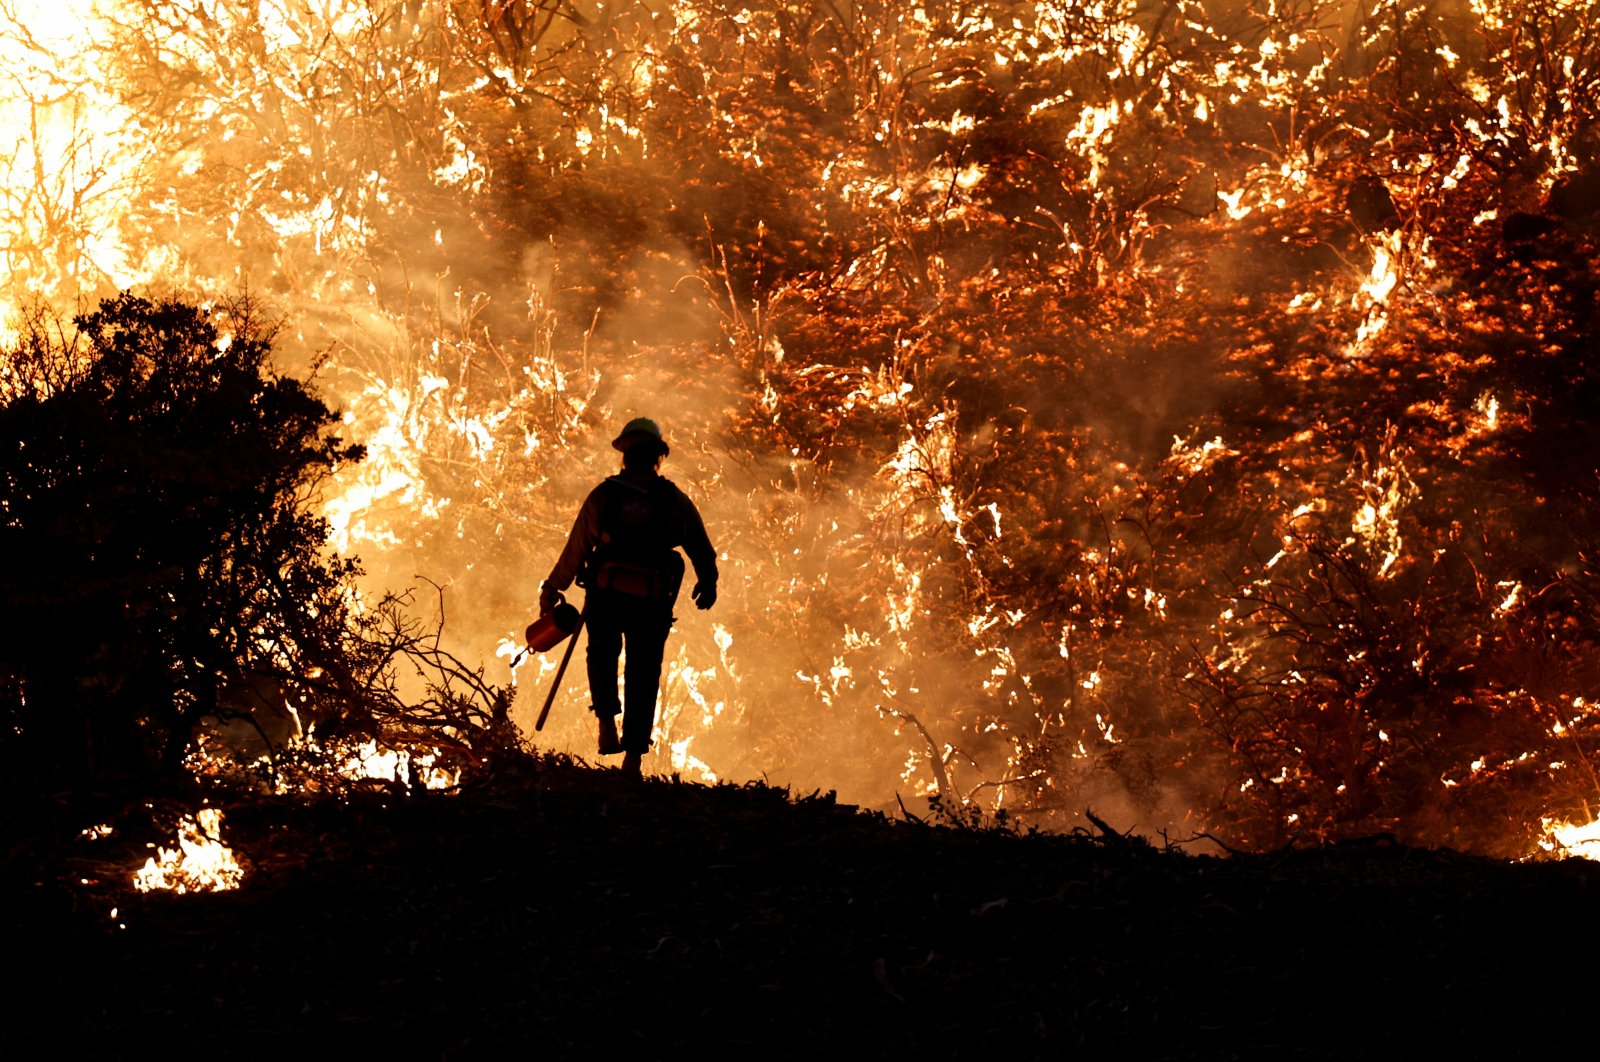 A firefighter battles the Caldor Fire in Grizzly Flats, California, U.S., Aug. 22, 2021. (REUTERS Photo)